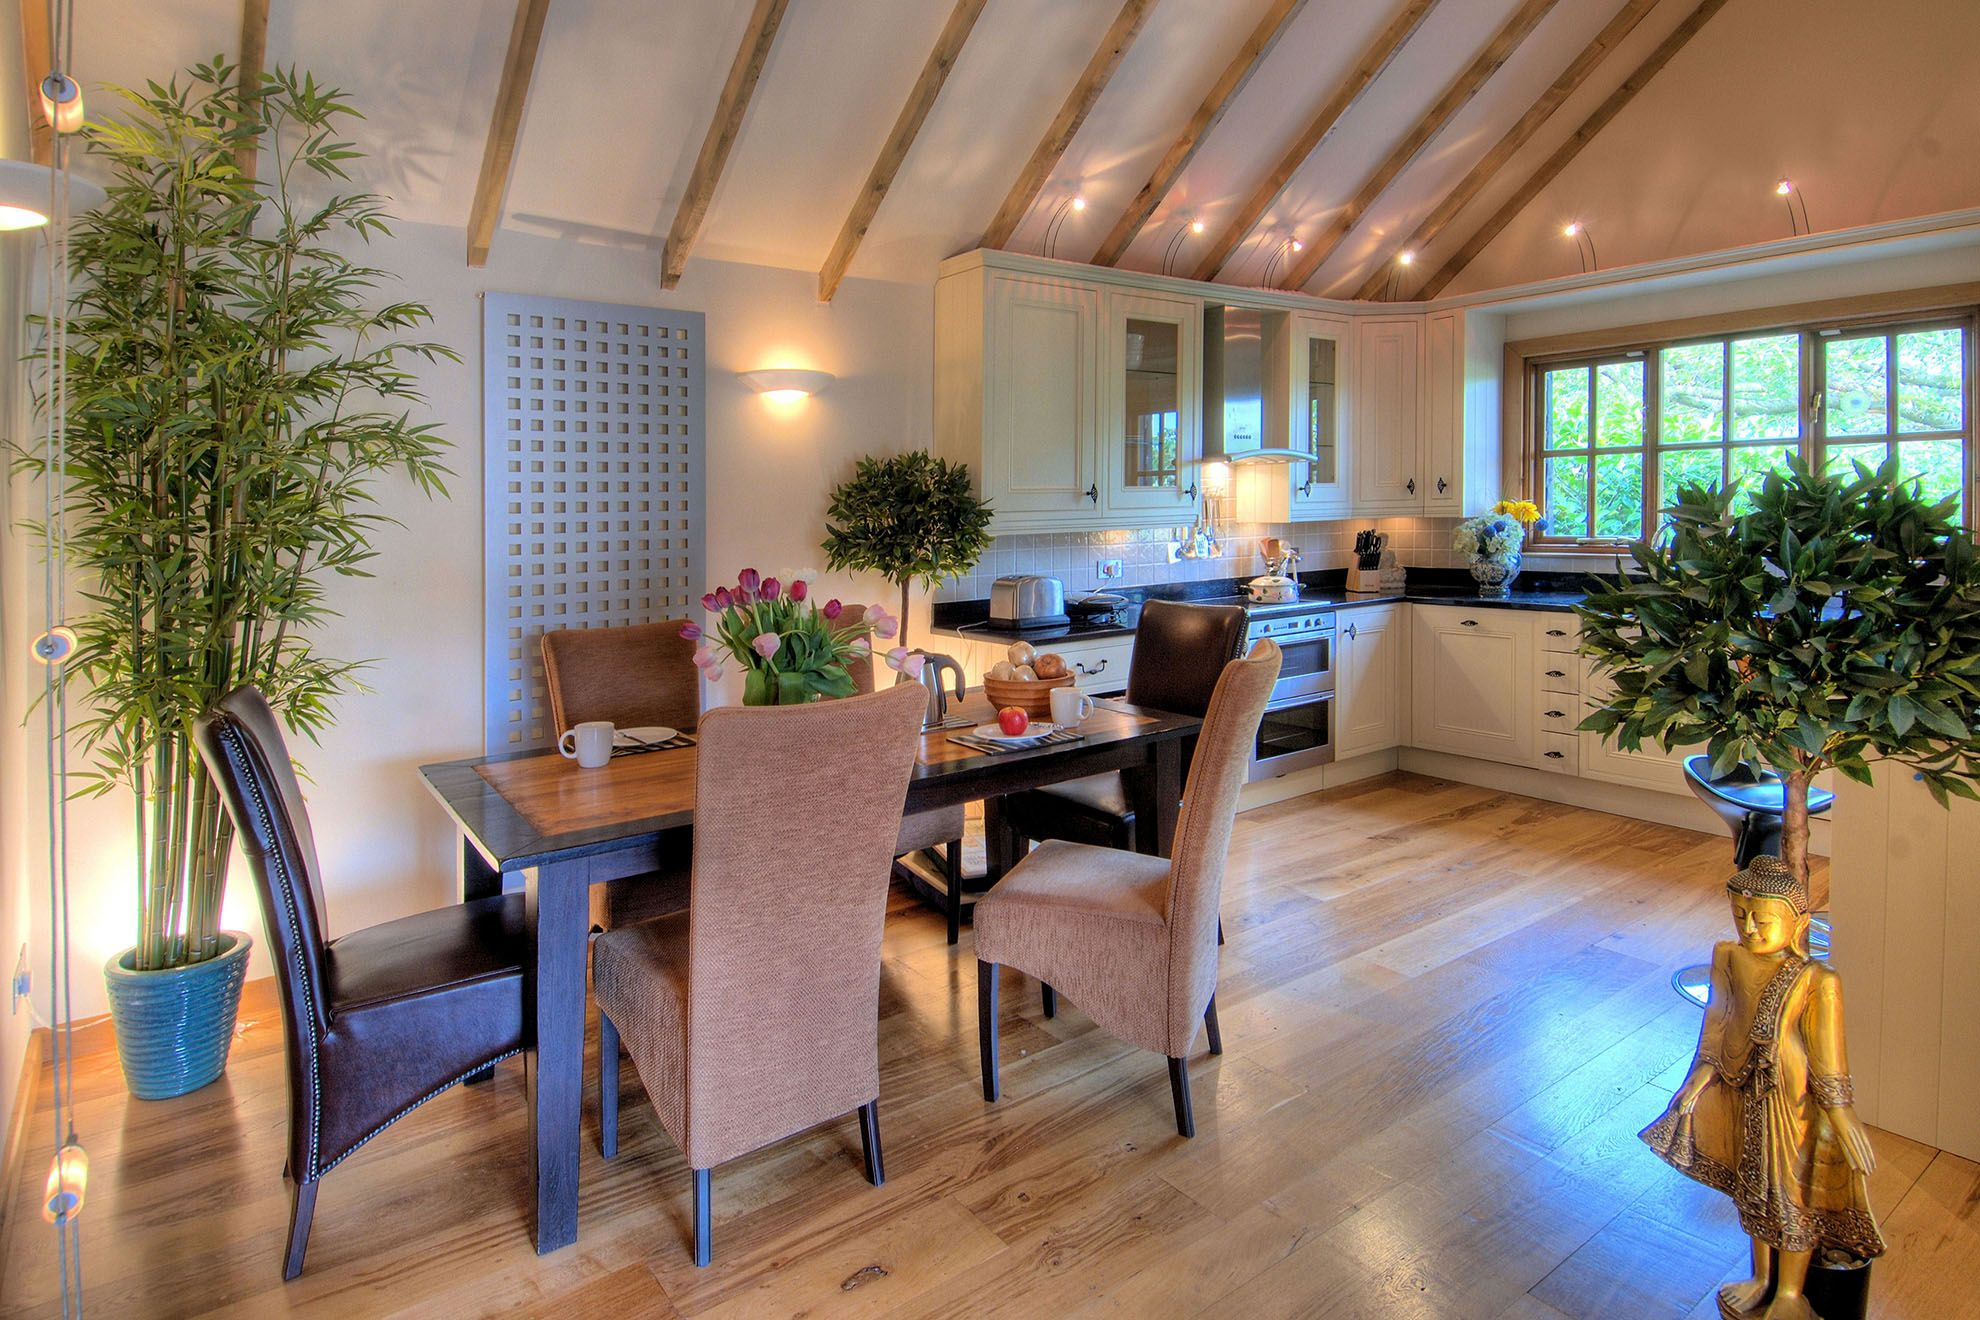 Stable Cottage ground floor: Vaulted lounge area in the open plan living space